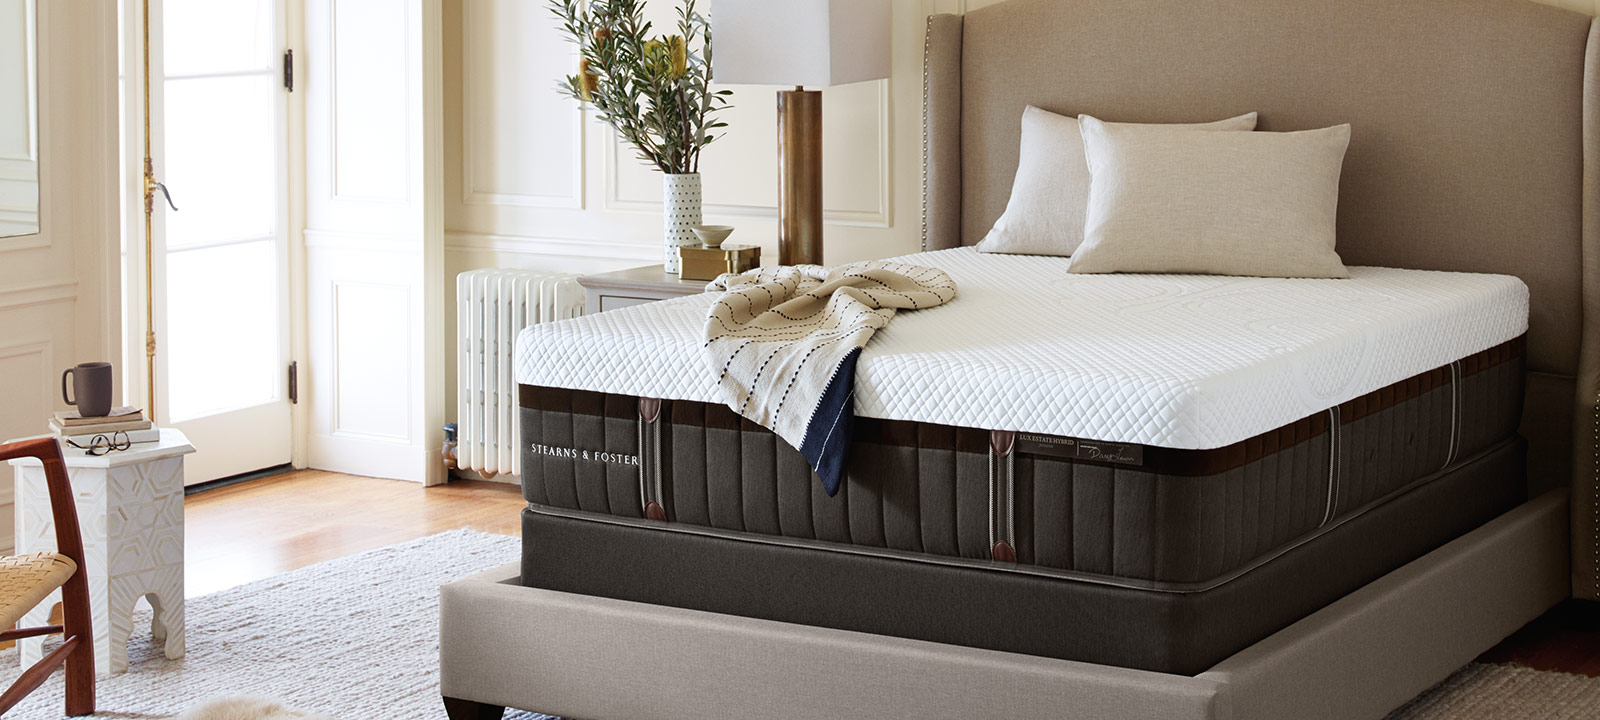 Stearns and Foster Mattress Reviews And Buying Guide by www.snoremagazine.com